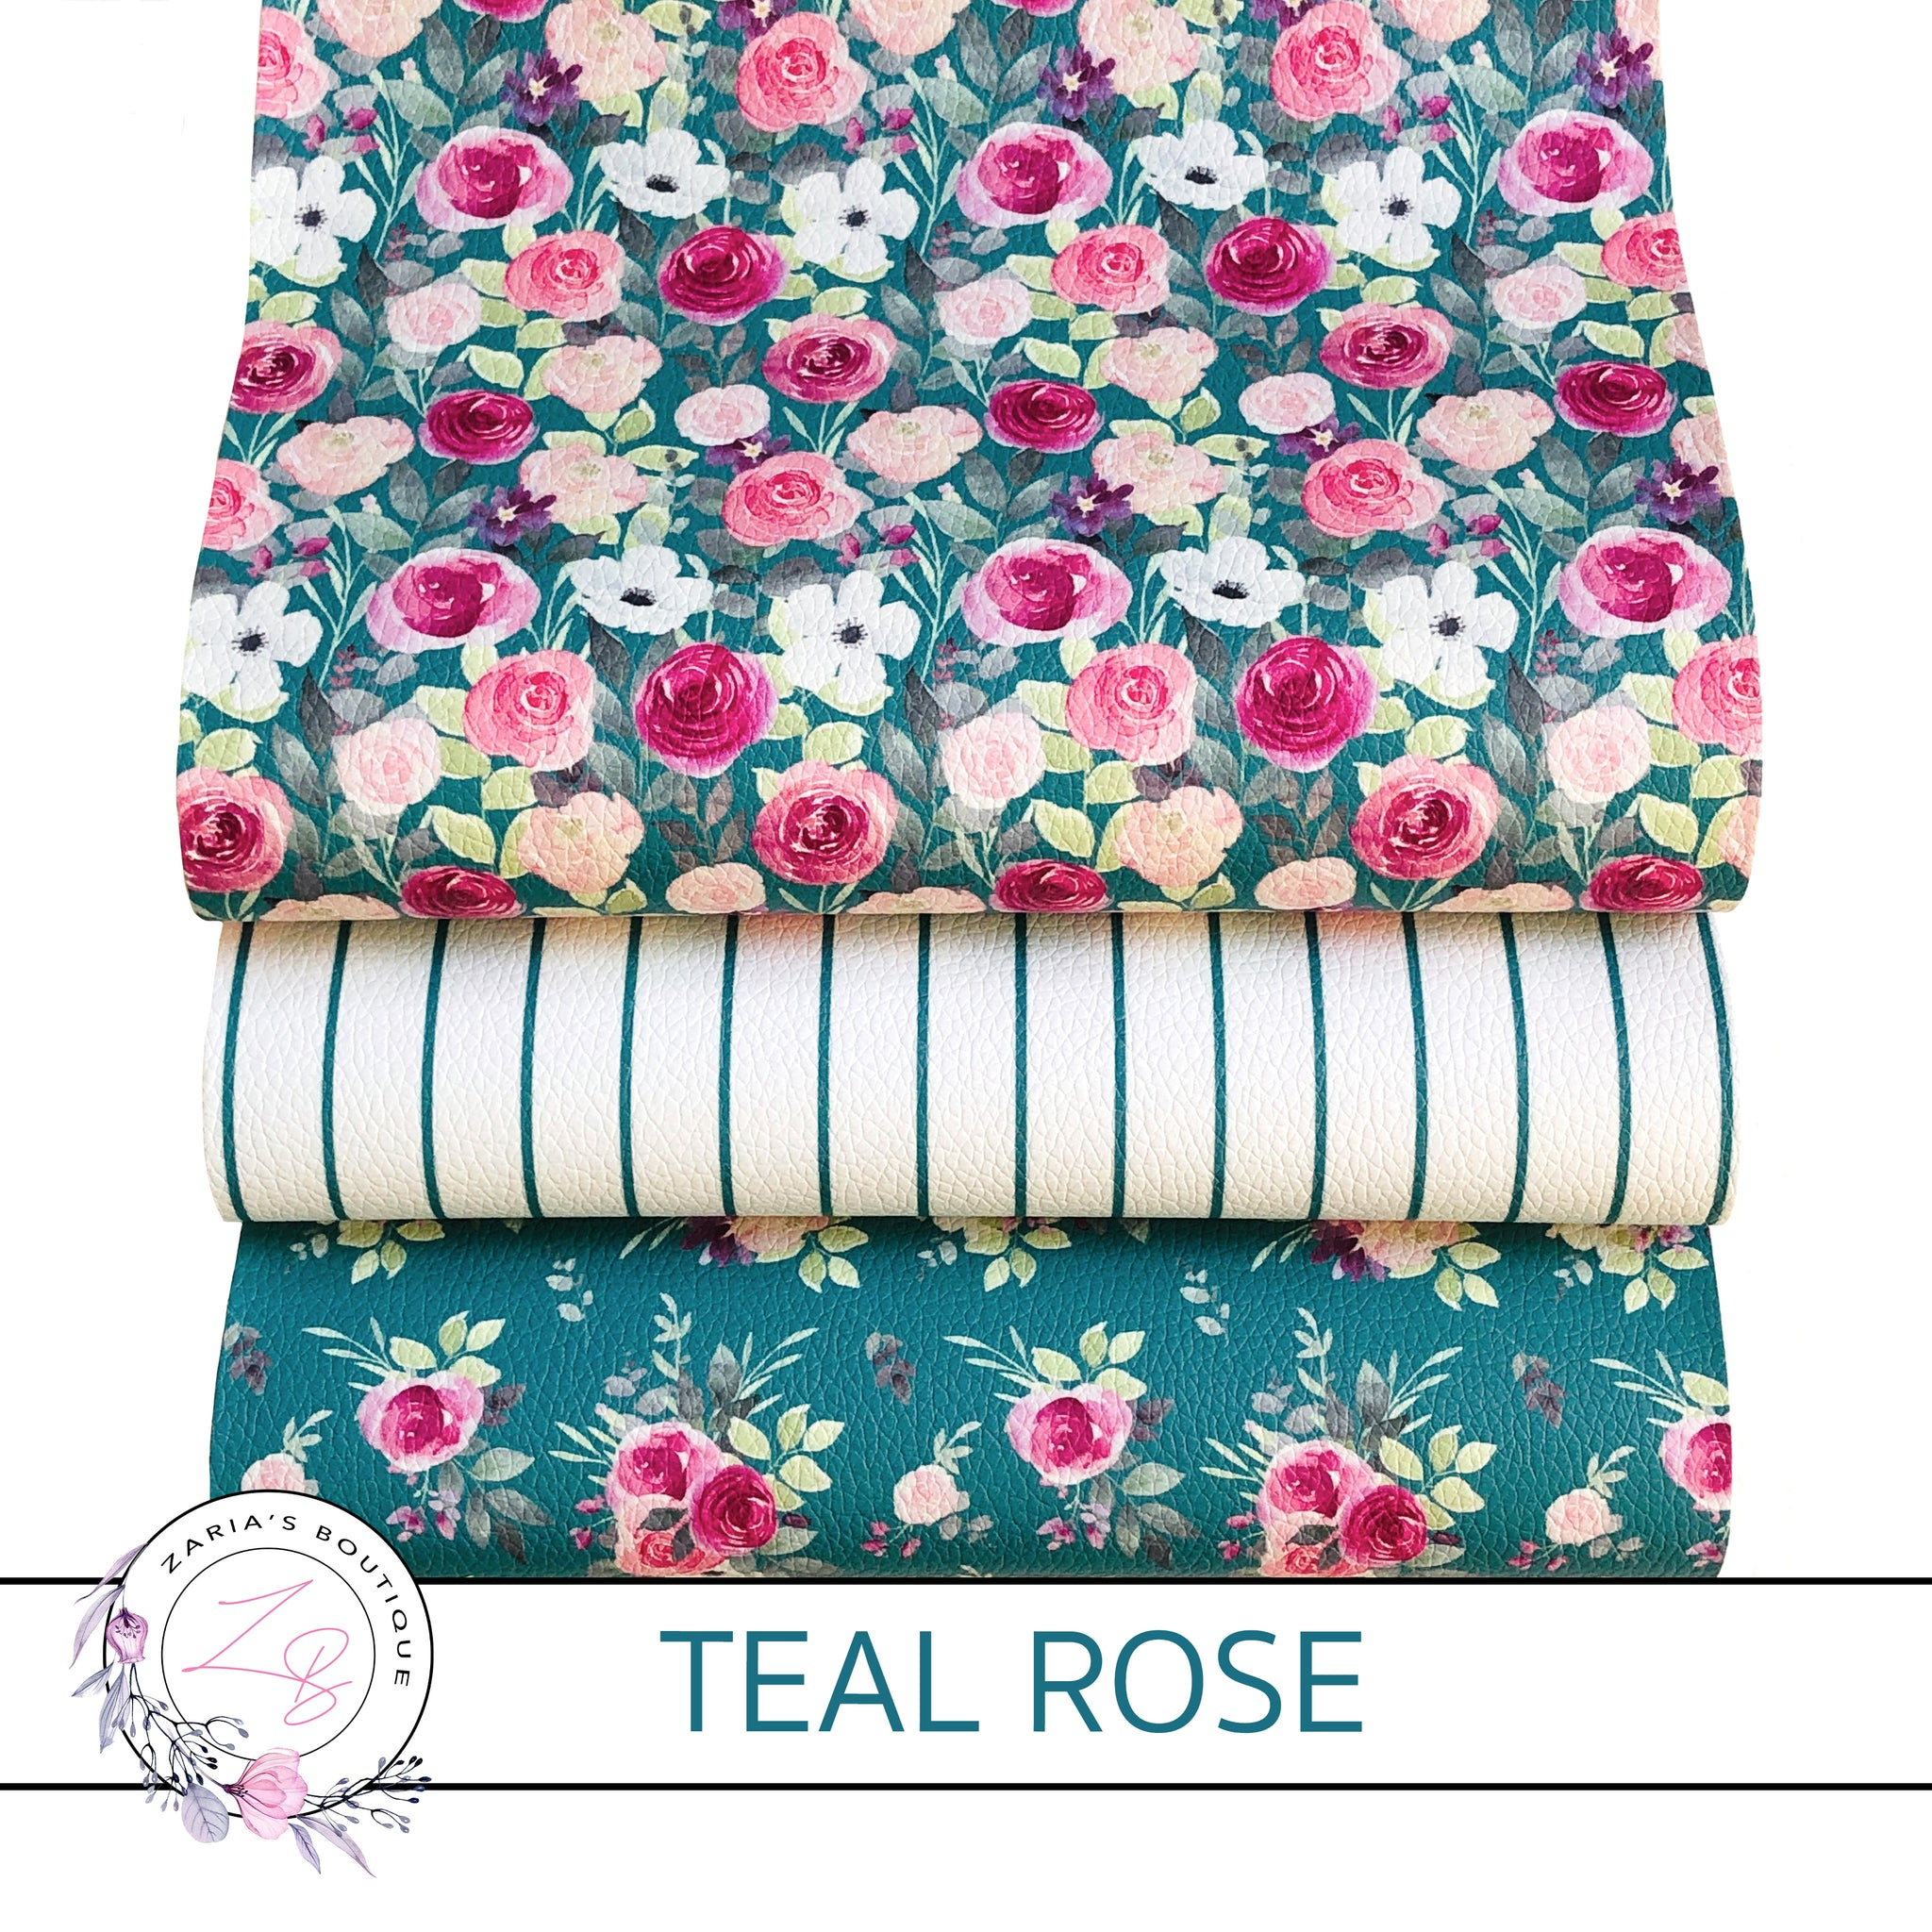 Custom Teal Rose Blooms Vegan Faux Leather Designer Multi-Pack or Single Sheets